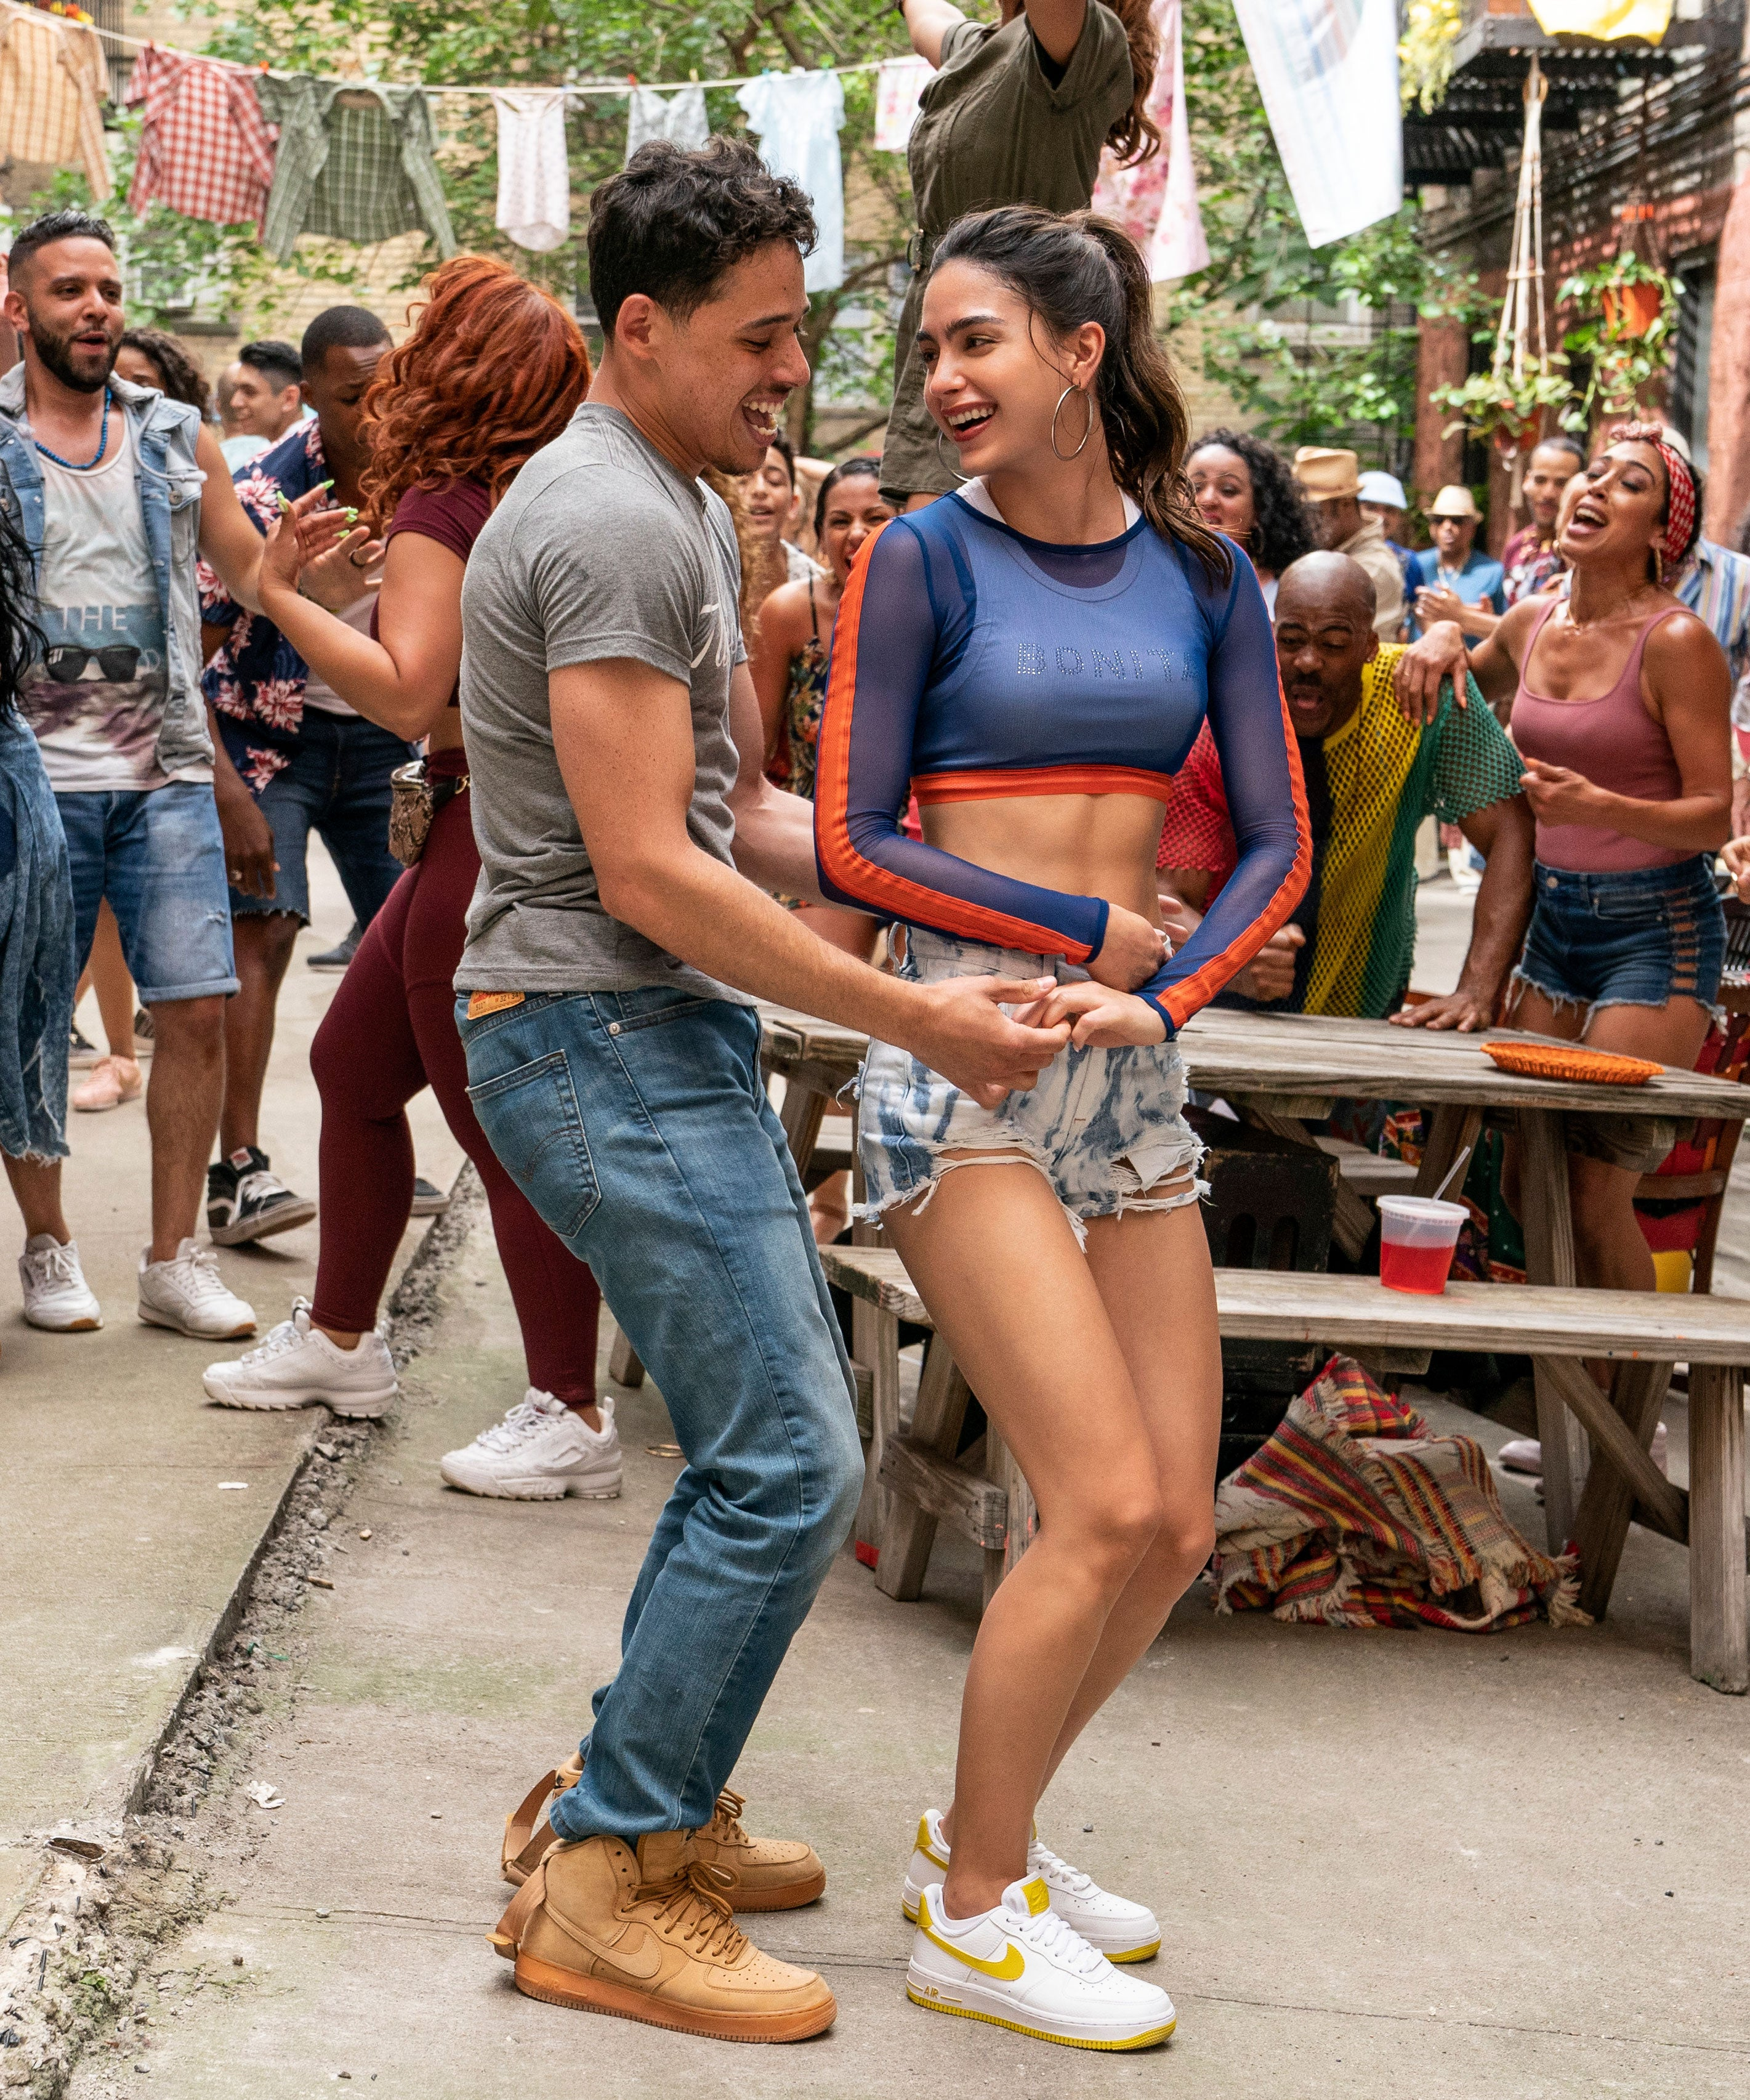 Musical Lover Or Not, The In The Heights Trailer Is A Must-Watch